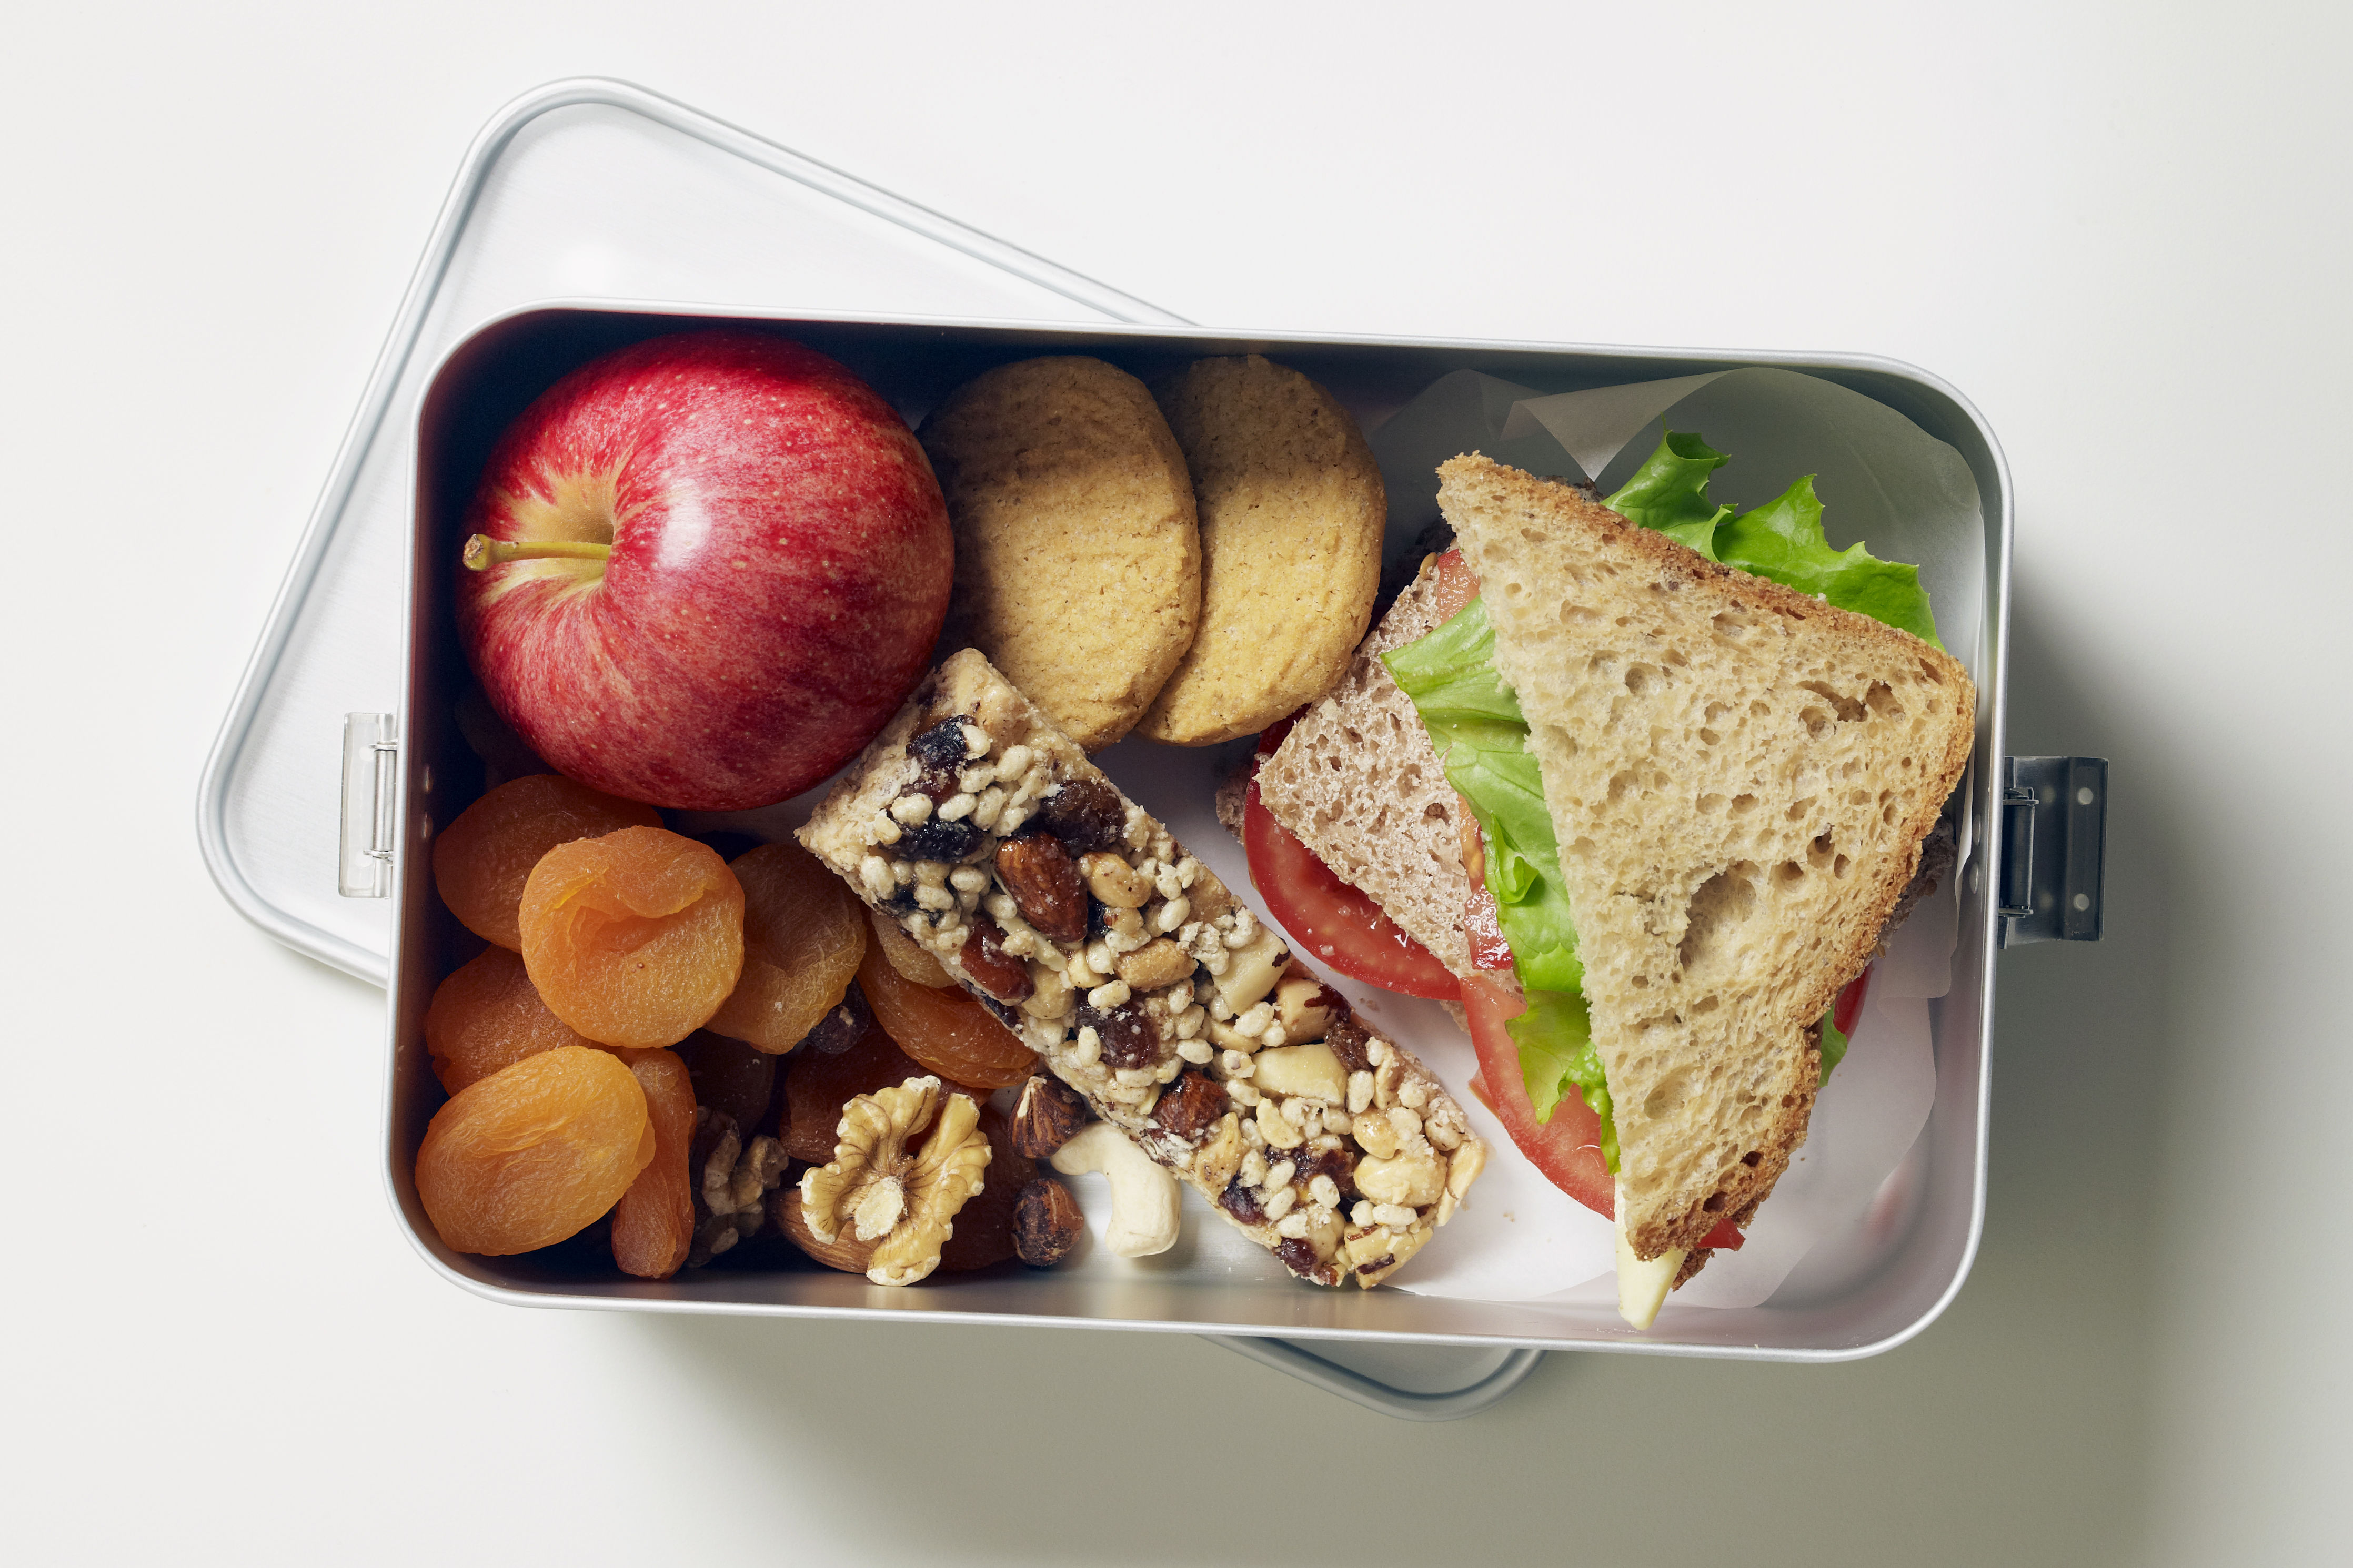 Quick and Easy Tips for Packing School Lunches